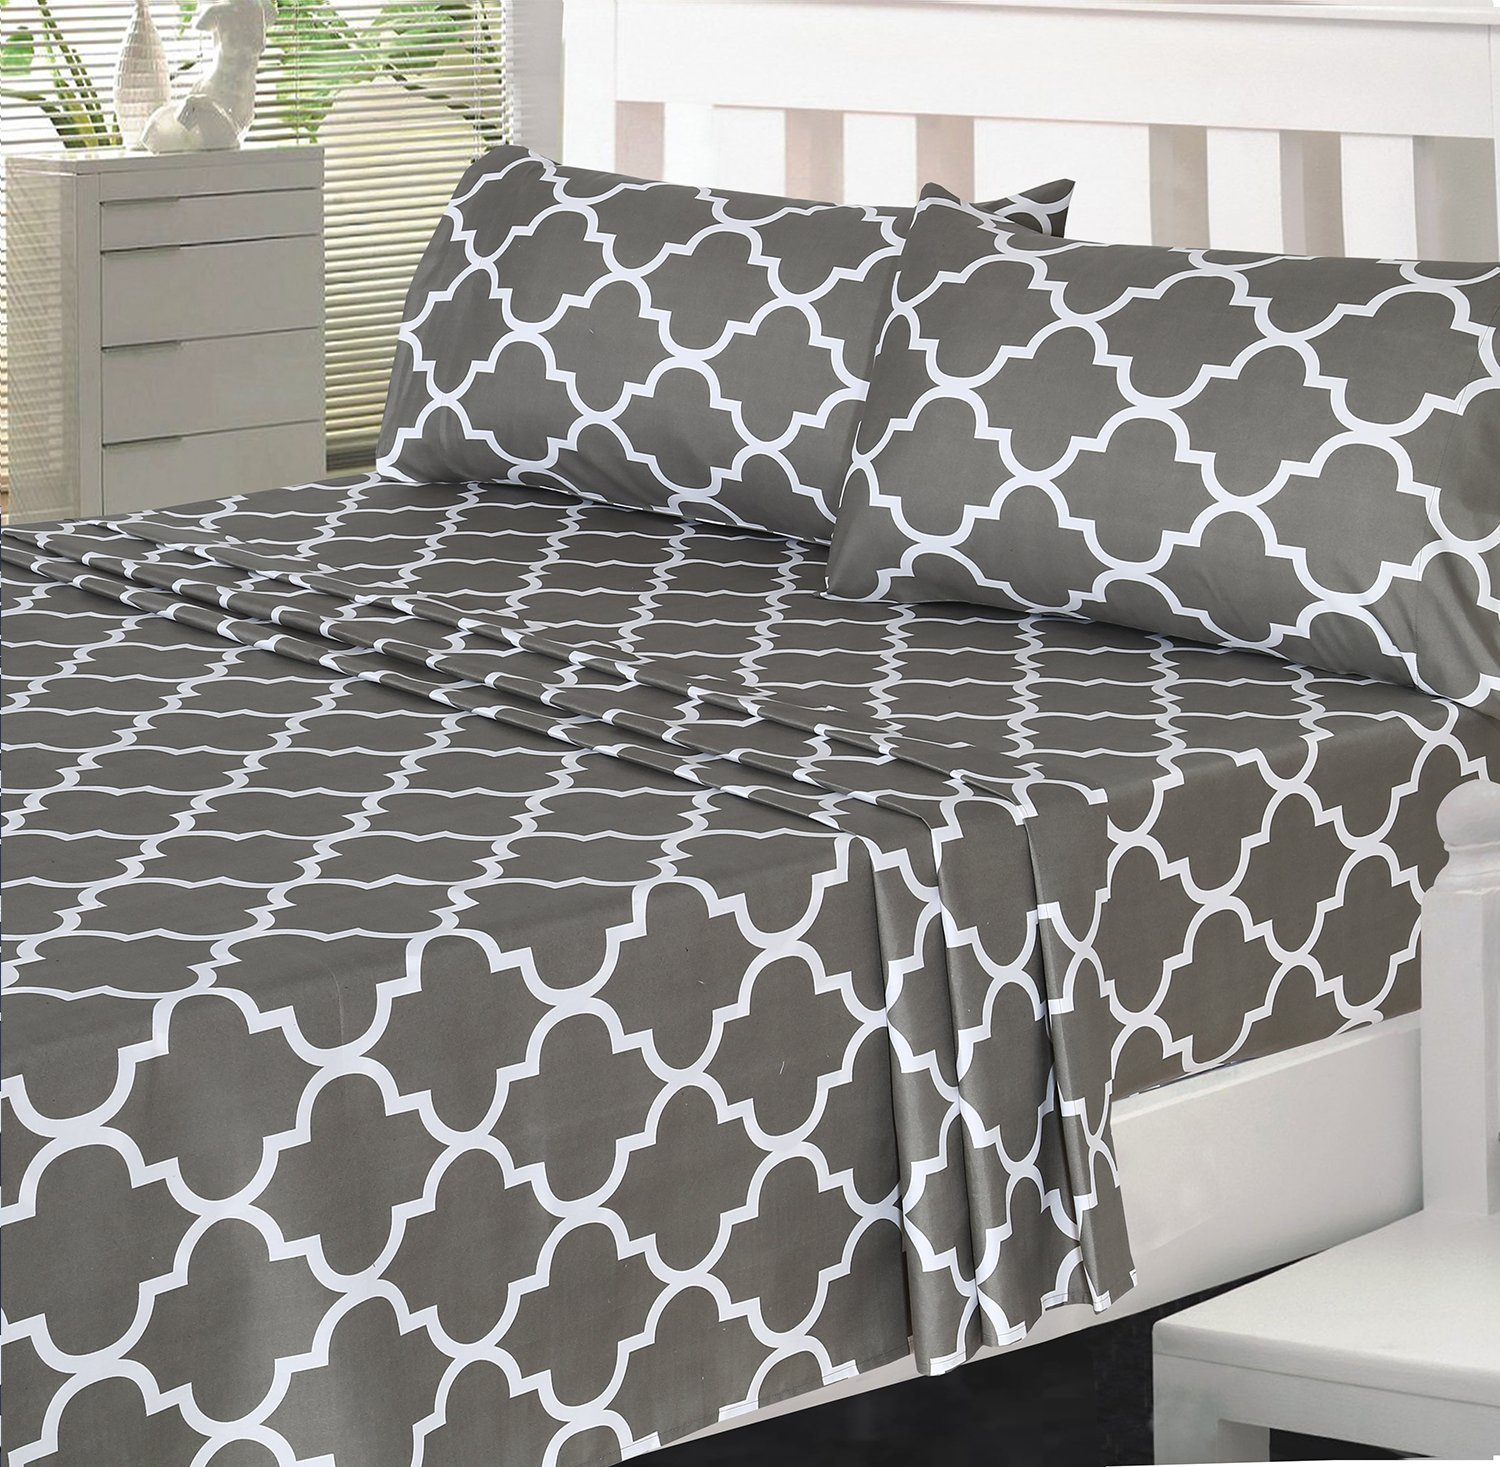 Utopia bedding 4 Piece Bed Sheet Set (Full, Grey